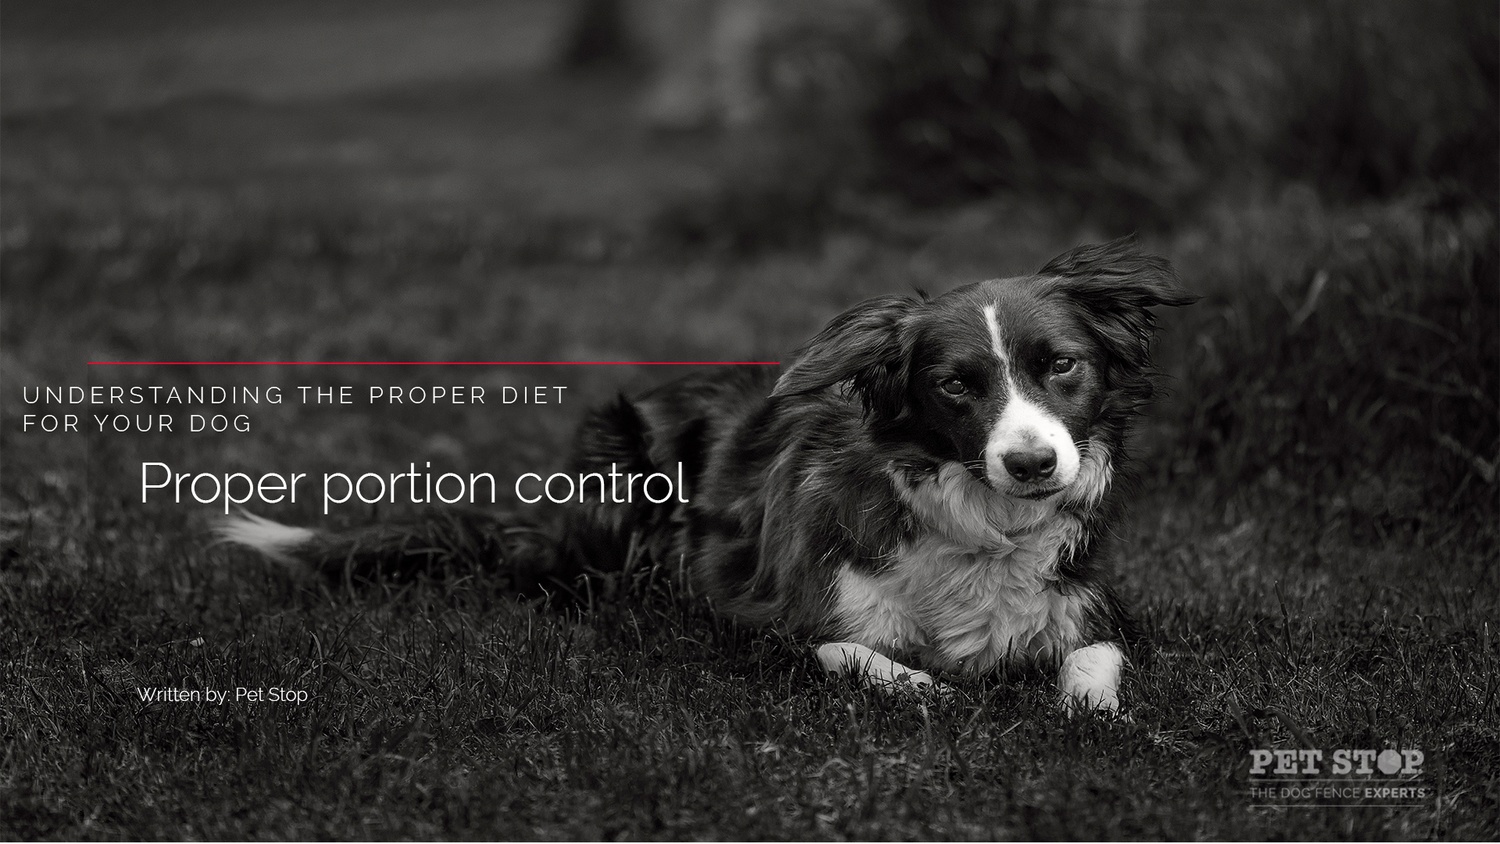 Best Dog Food Diet For Chronic Ear Infections